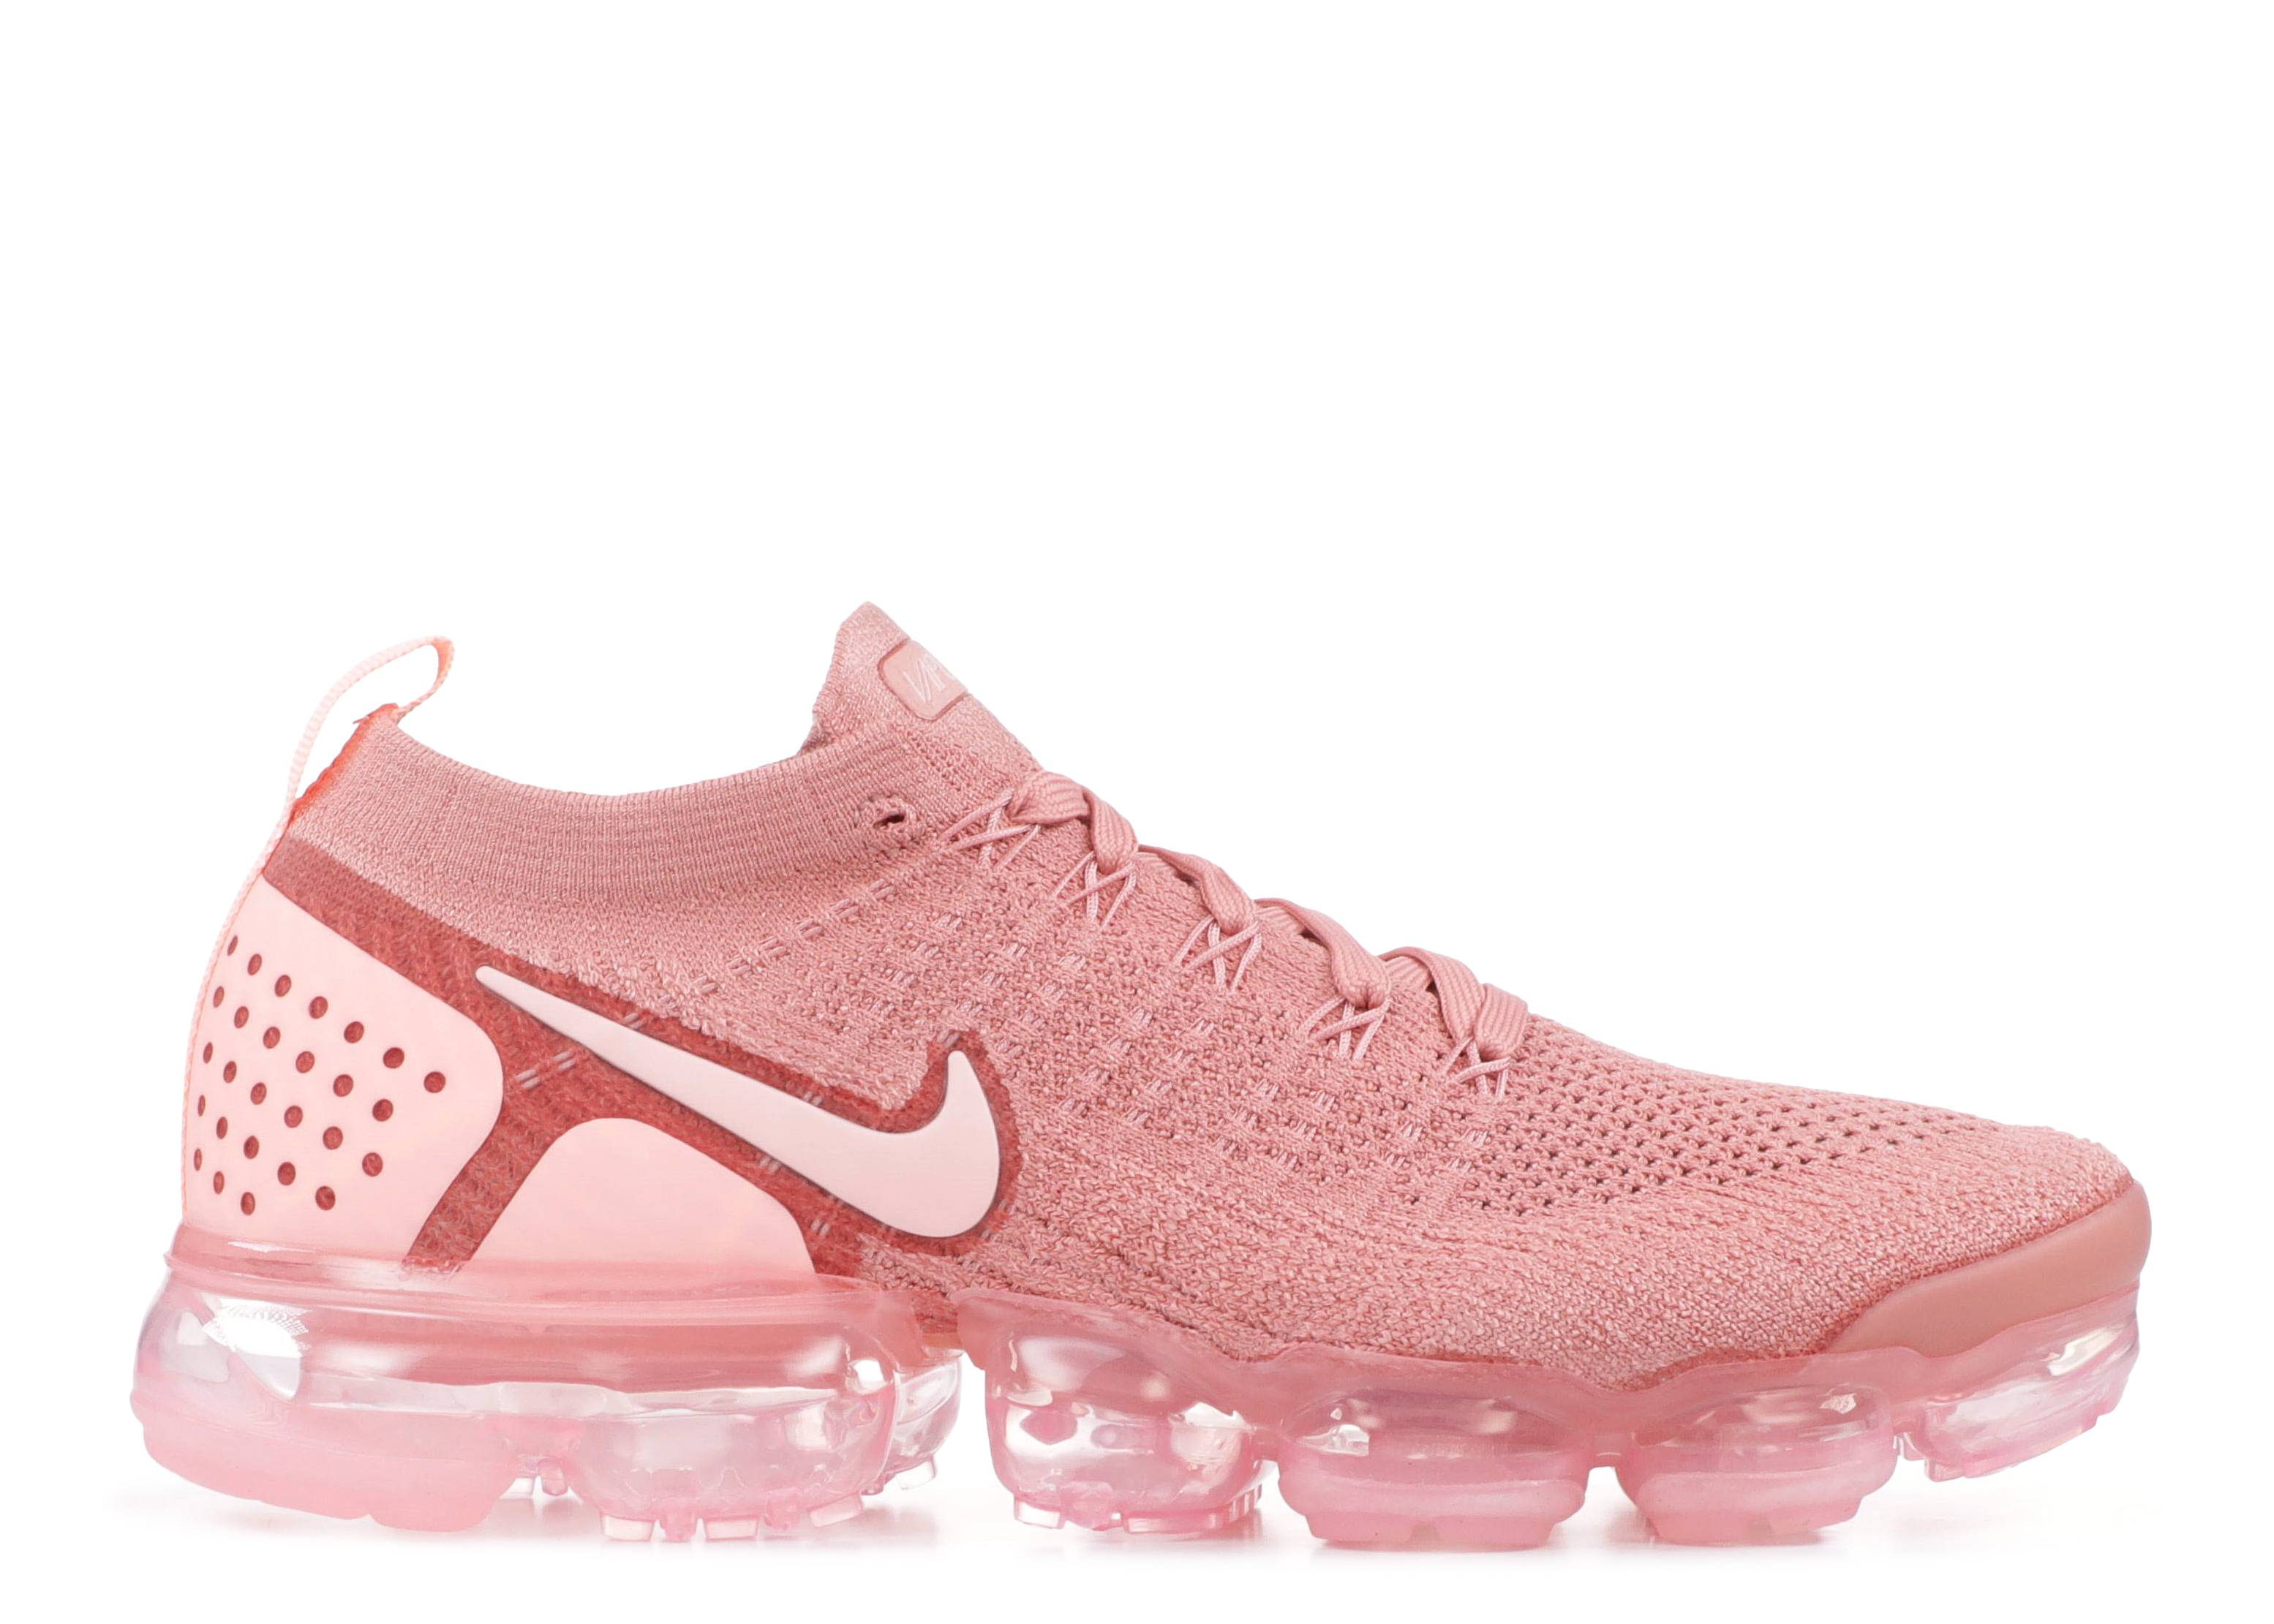 reputable site 76dee edfa4 w nike air vapormax flyknit 2